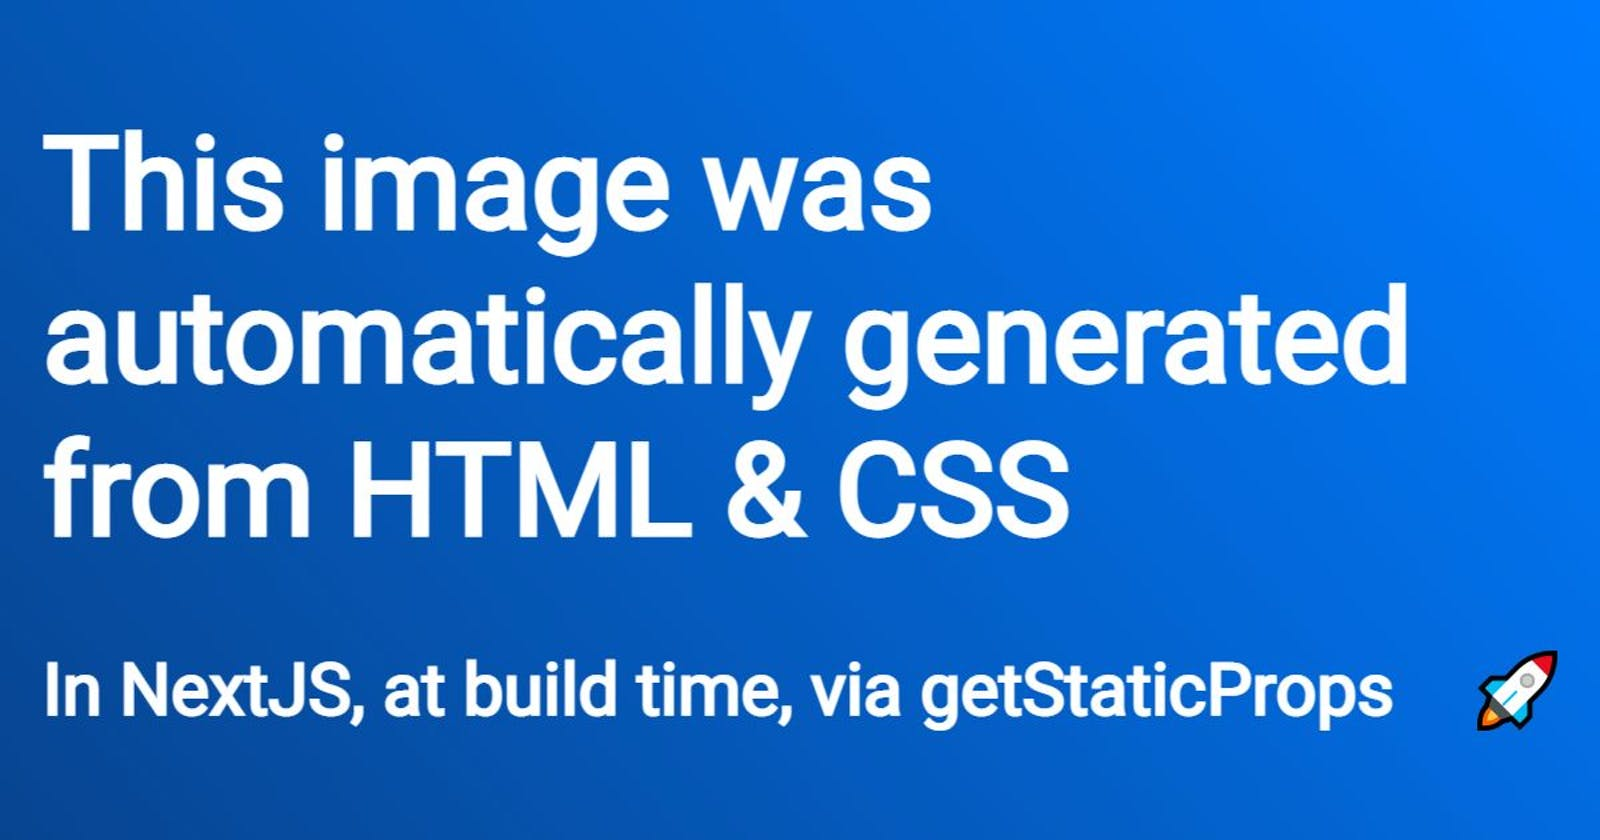 Static, automated social images with NextJS